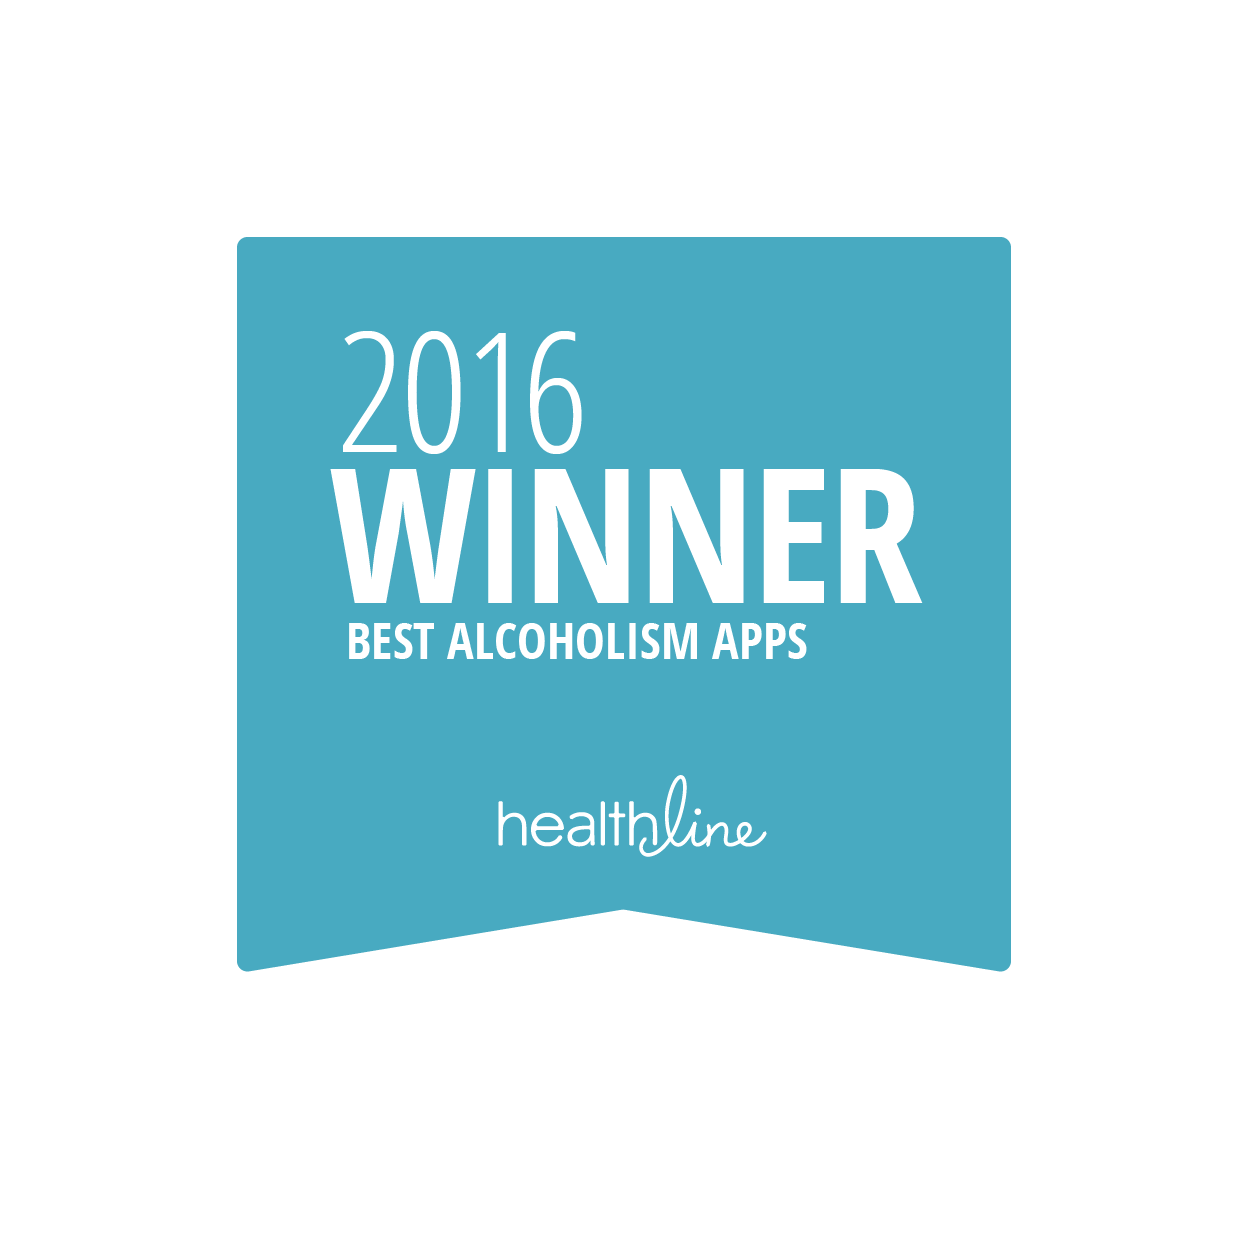 The Best Alcoholism Apps of the Year